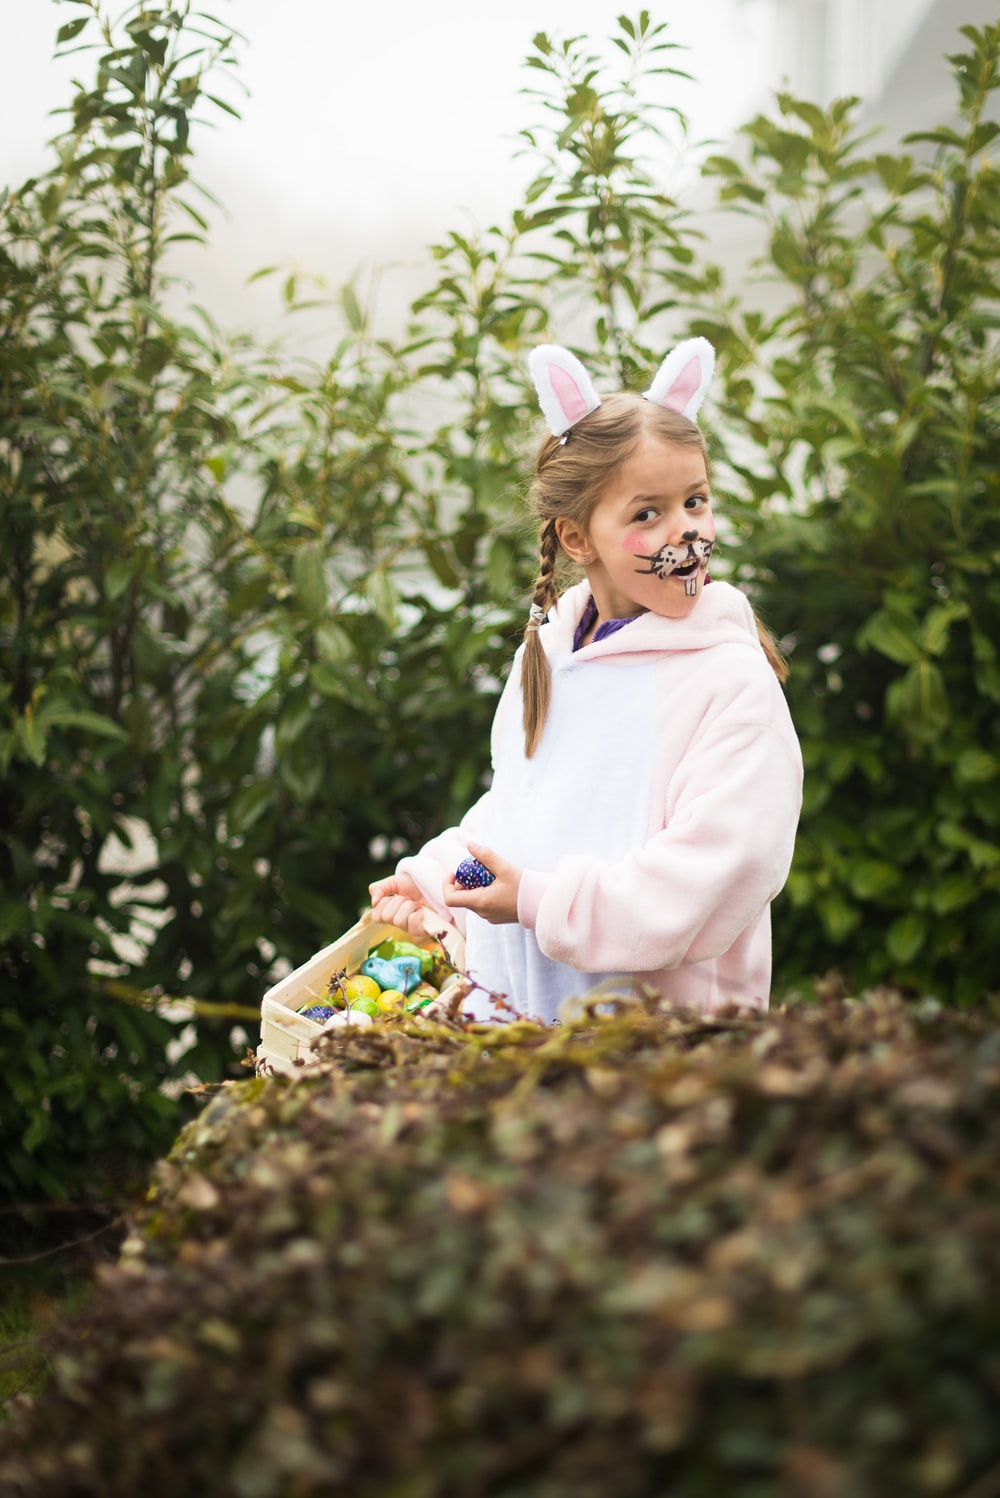 girl in pink hoodie with bunny costumes near green plants